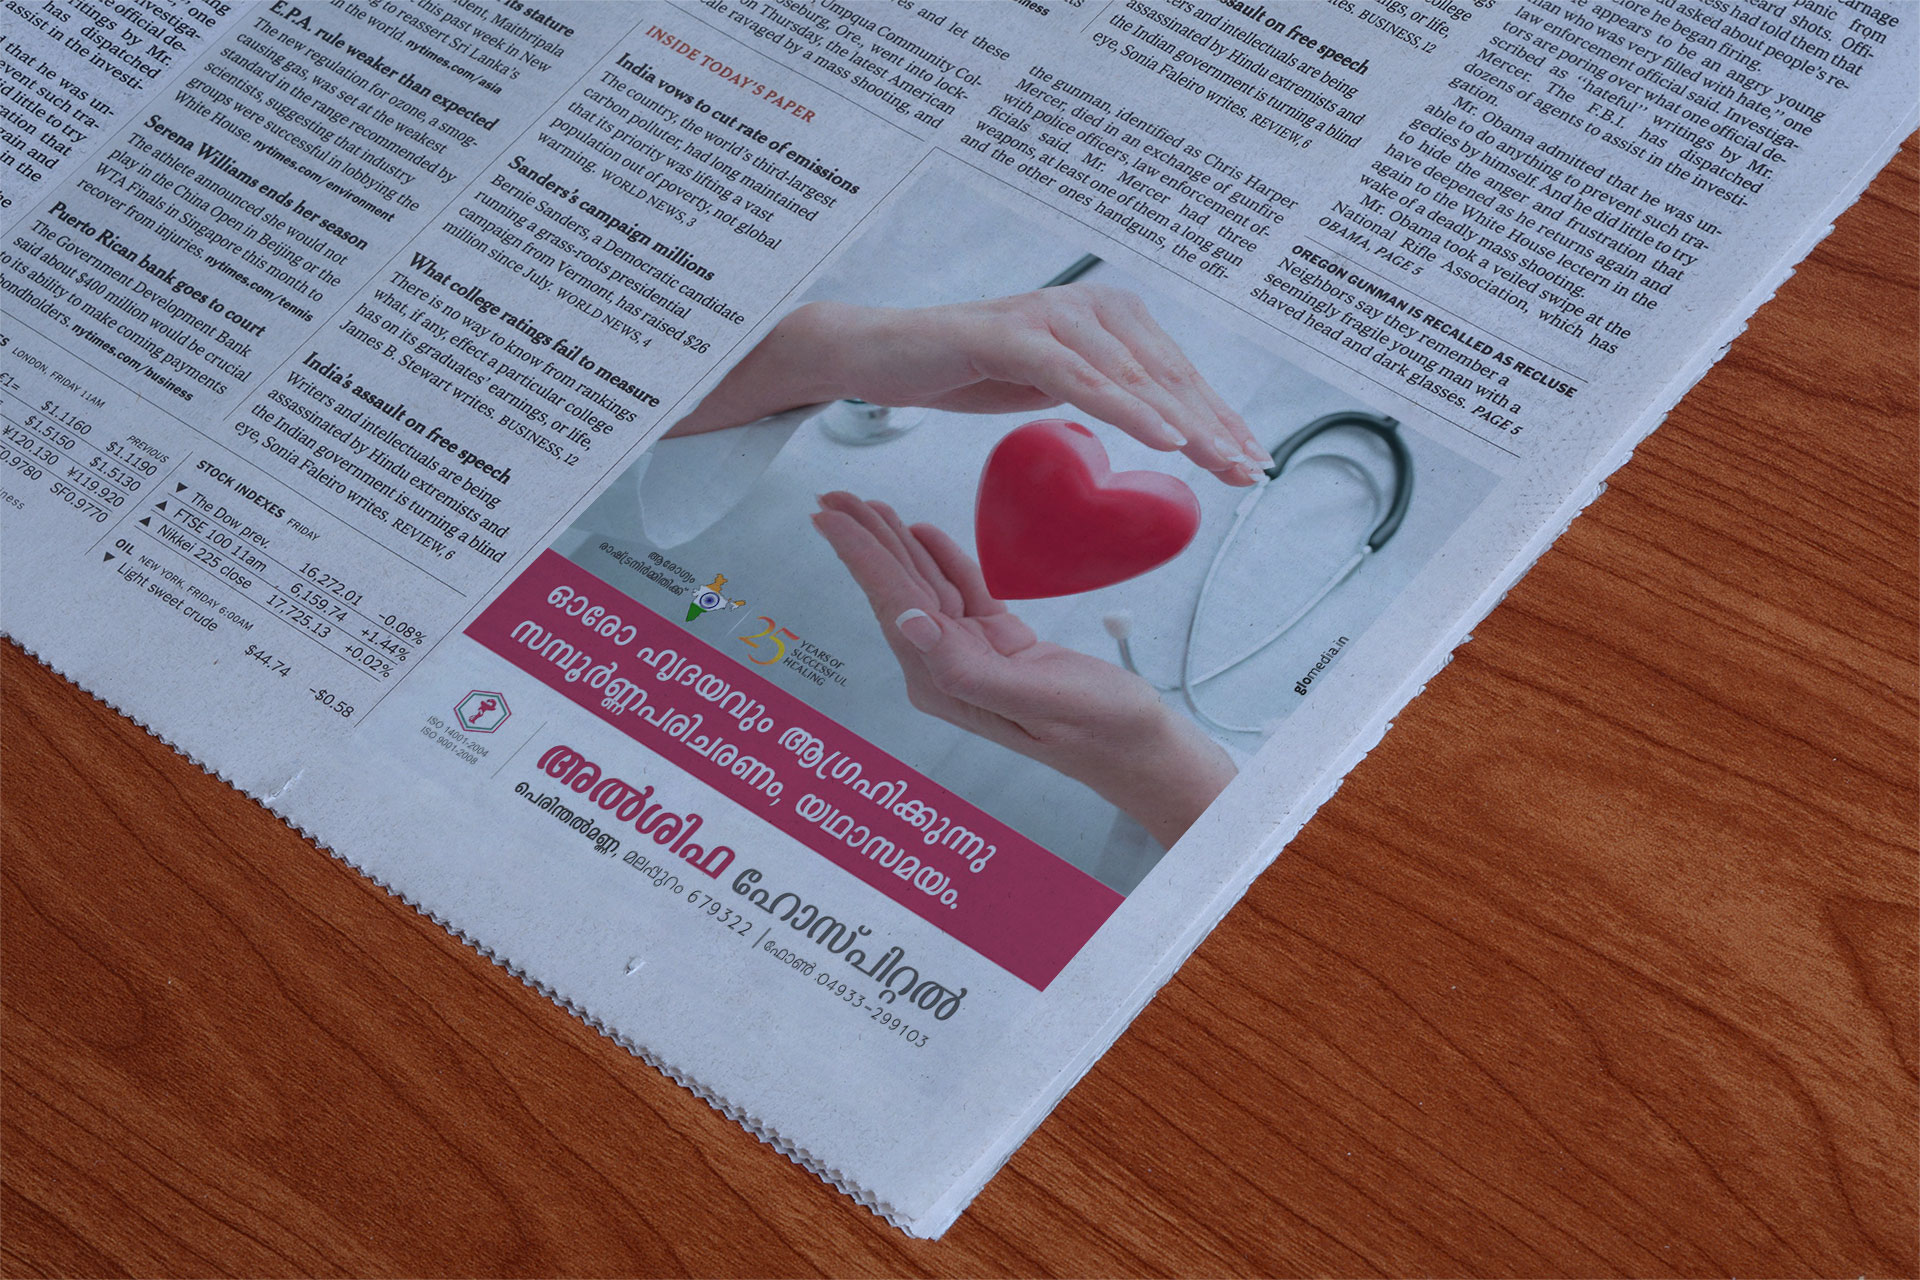 A newspaper advertisemnet of Al Shifa Hospital - Heart Care campaign